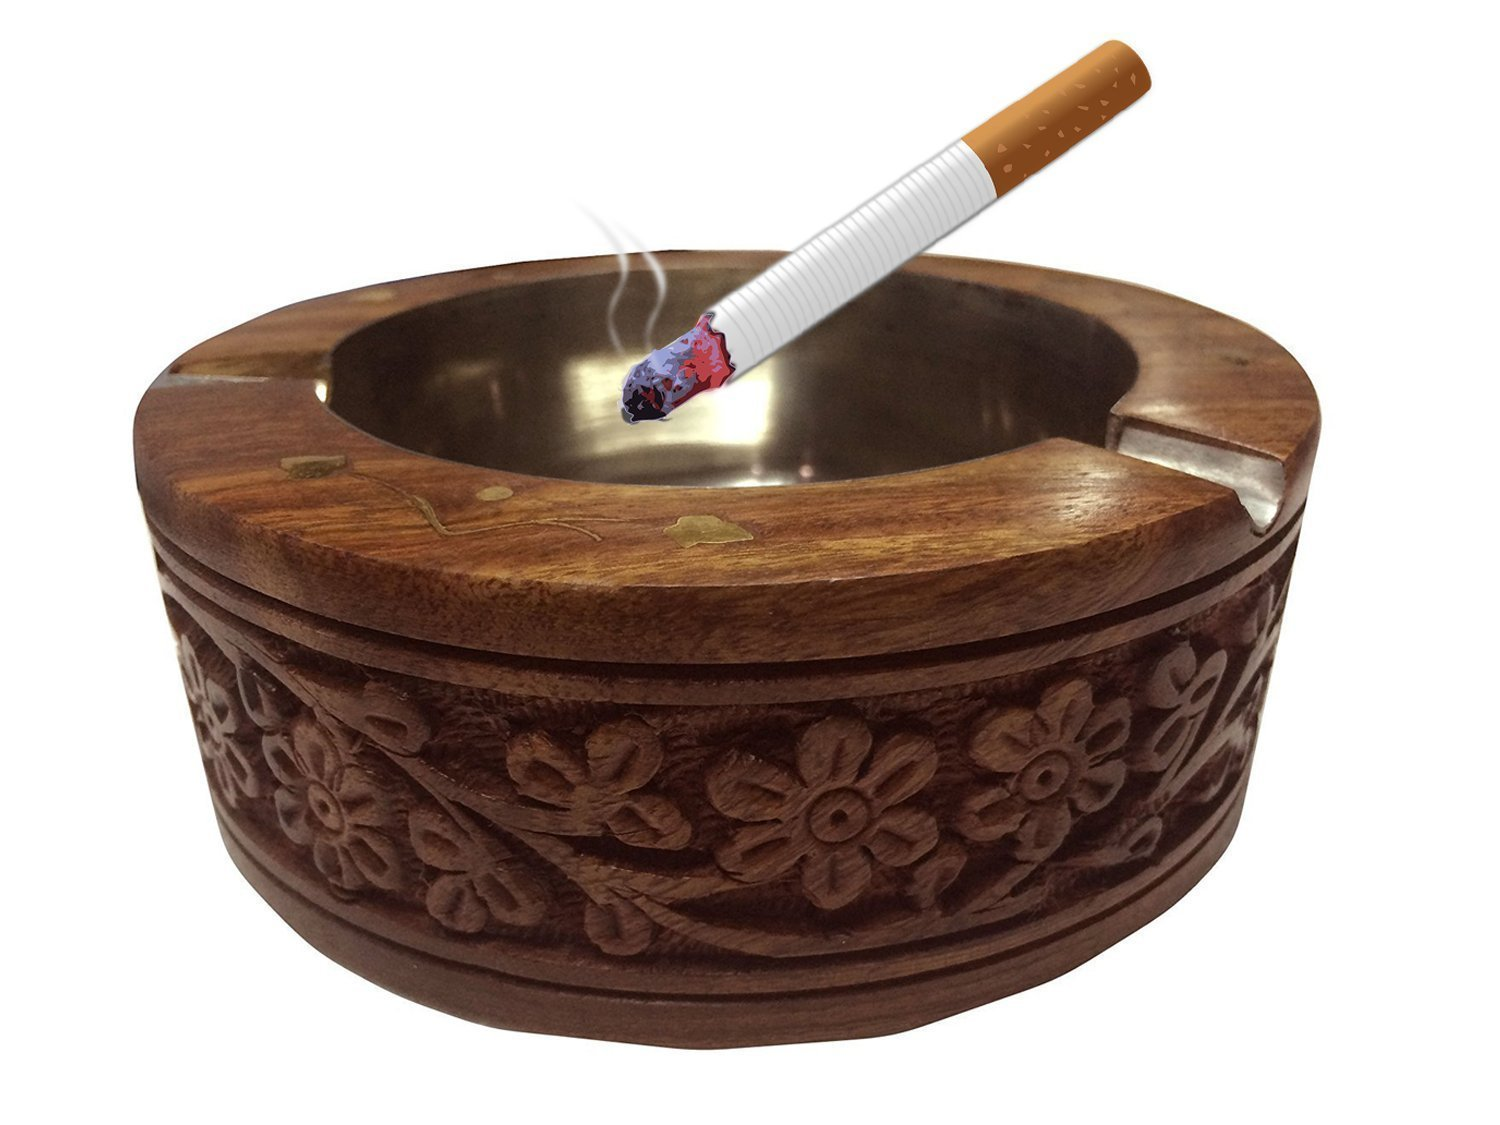 Wooden Round Carving Design Ashtray, Table Ashtray, Cigarette Ashtray, Cigarette Holder, Ashtray For Cigarette, Outdoor Ashtray - 4 X 1.5 Inch